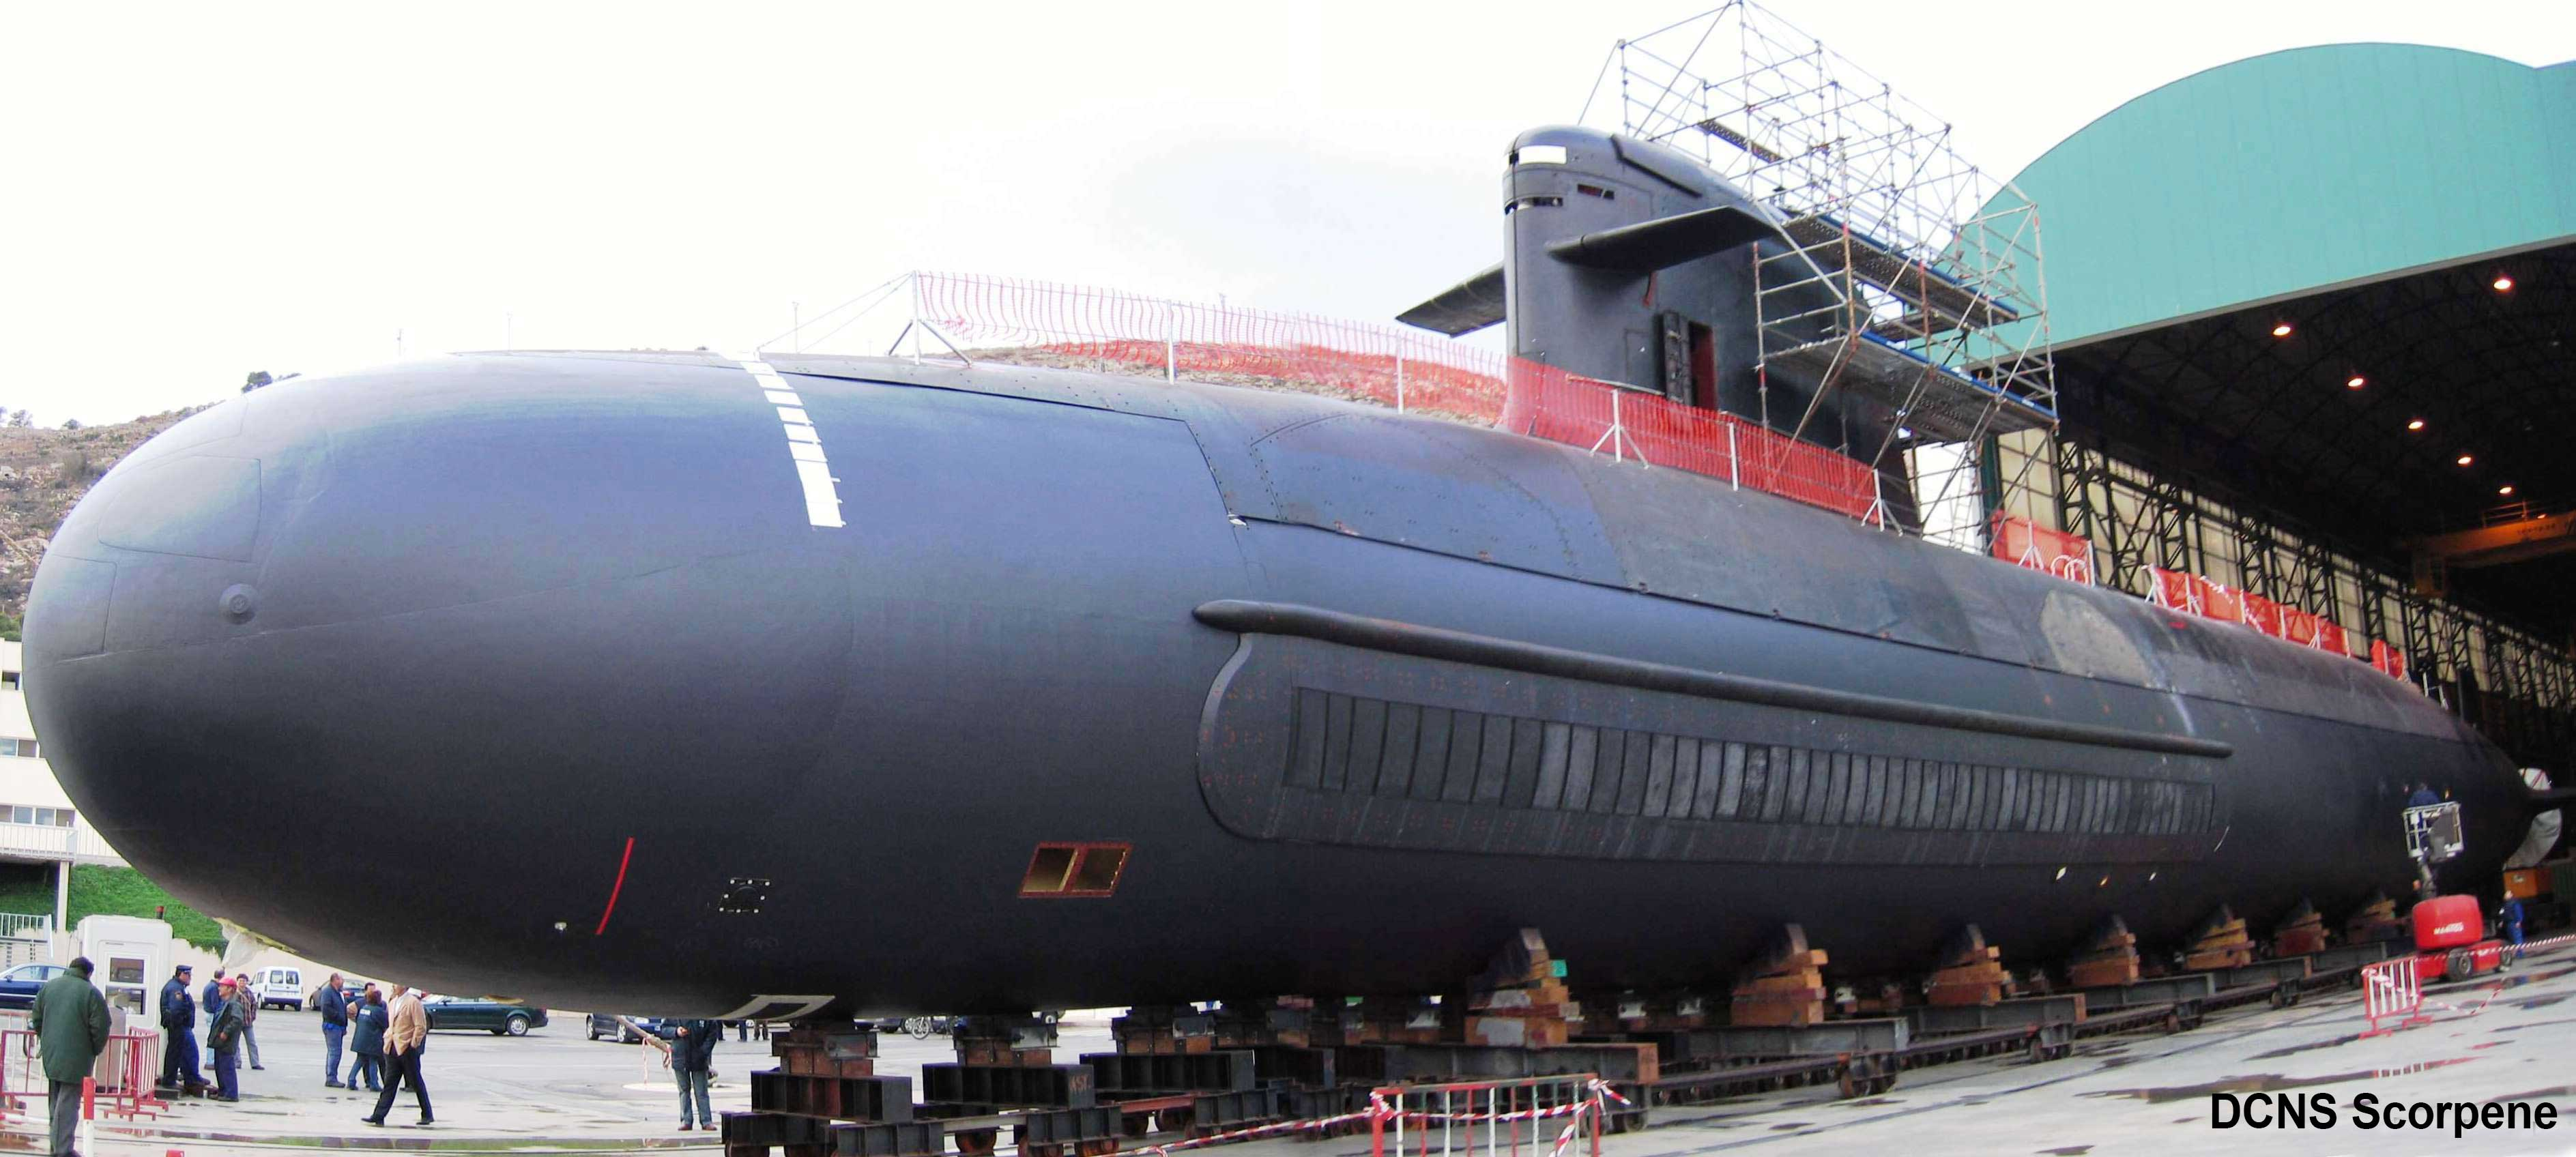 DCNS Scorpene submarines